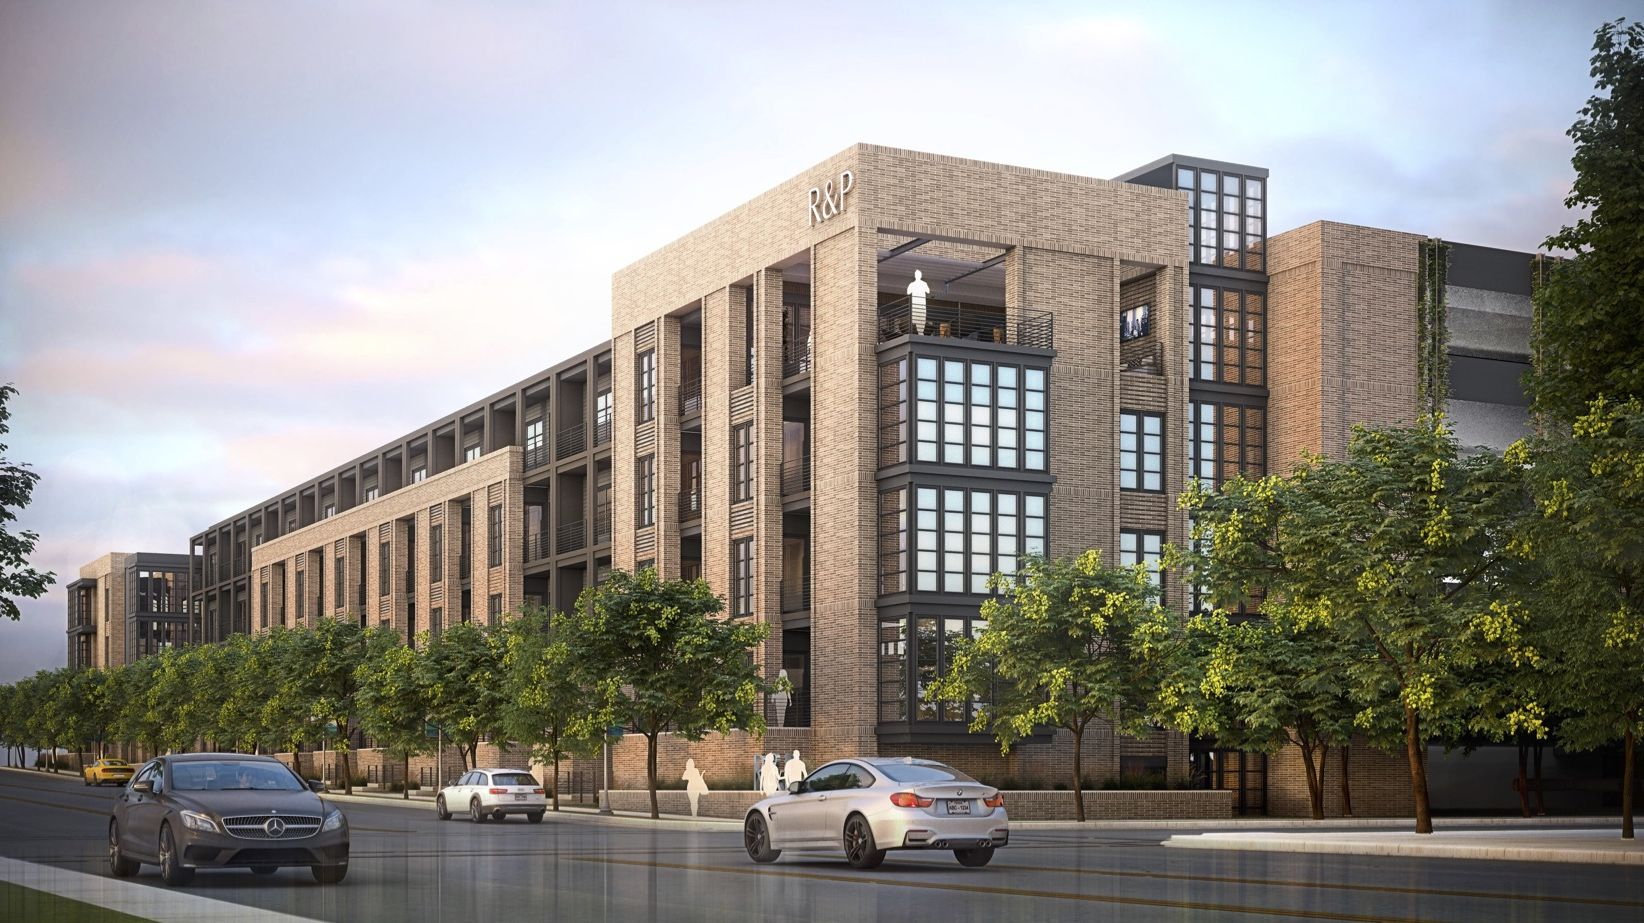 Pollack Shores Real Estate Group is building the apartments at Ross Avenue and Peak Street east of downtown Dallas.